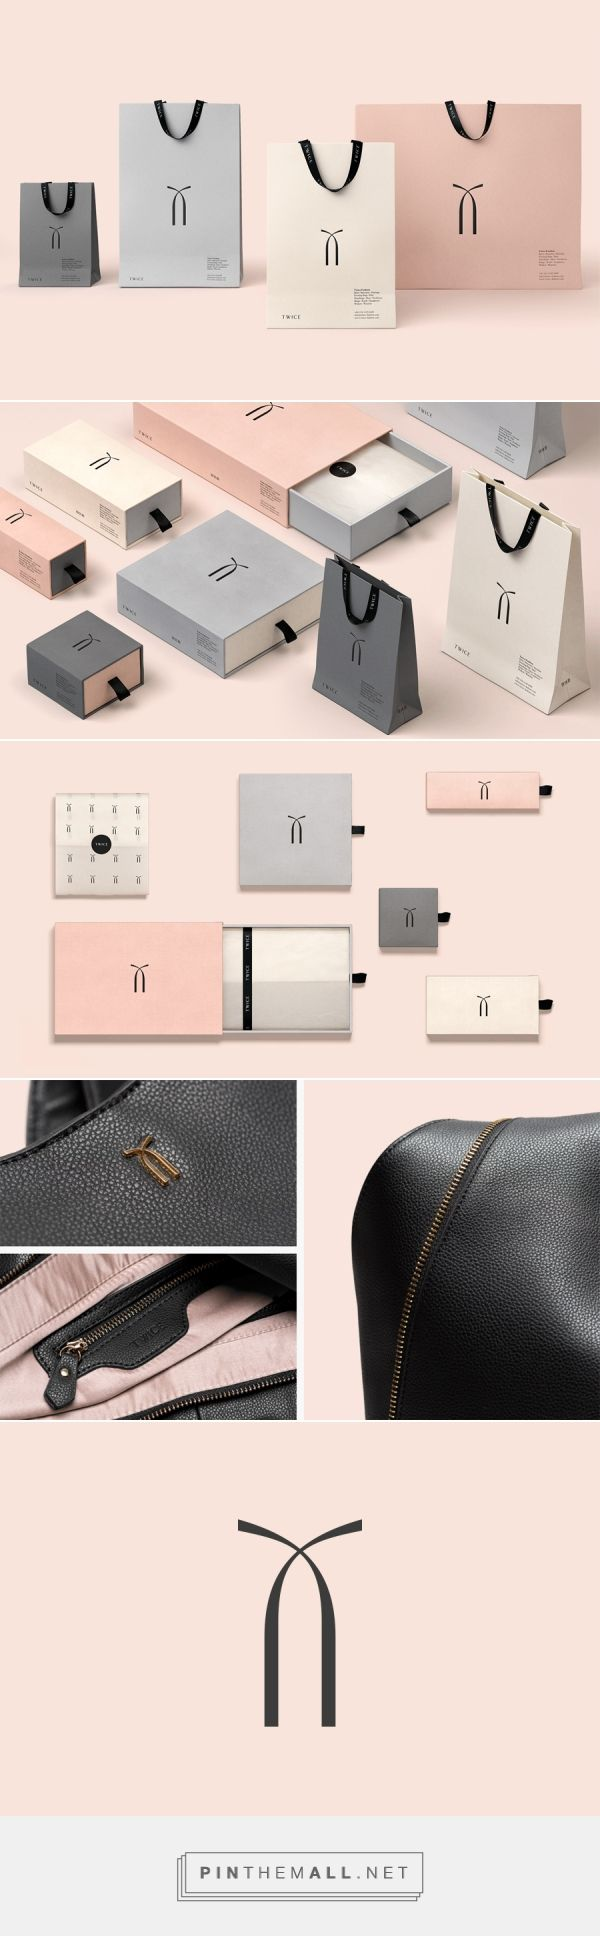 Twice Fashion / Chinese luxury accessory brand by SocioDesign - Tap the link to shop on our official online store! You can also join our affiliate and/or rewards programs for FREE!